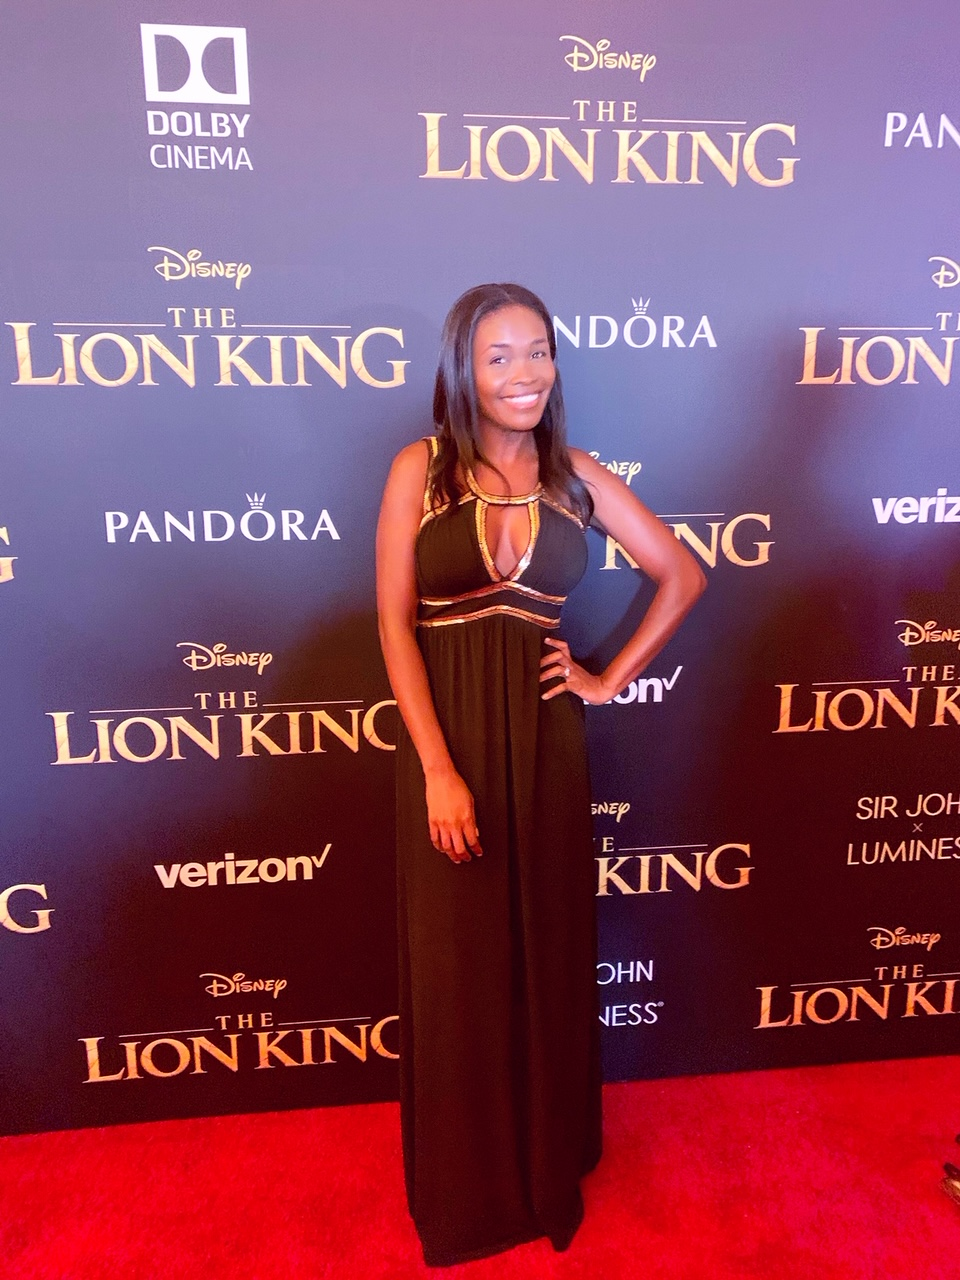 Rhonda at The Lion King Red Carpet.JPG